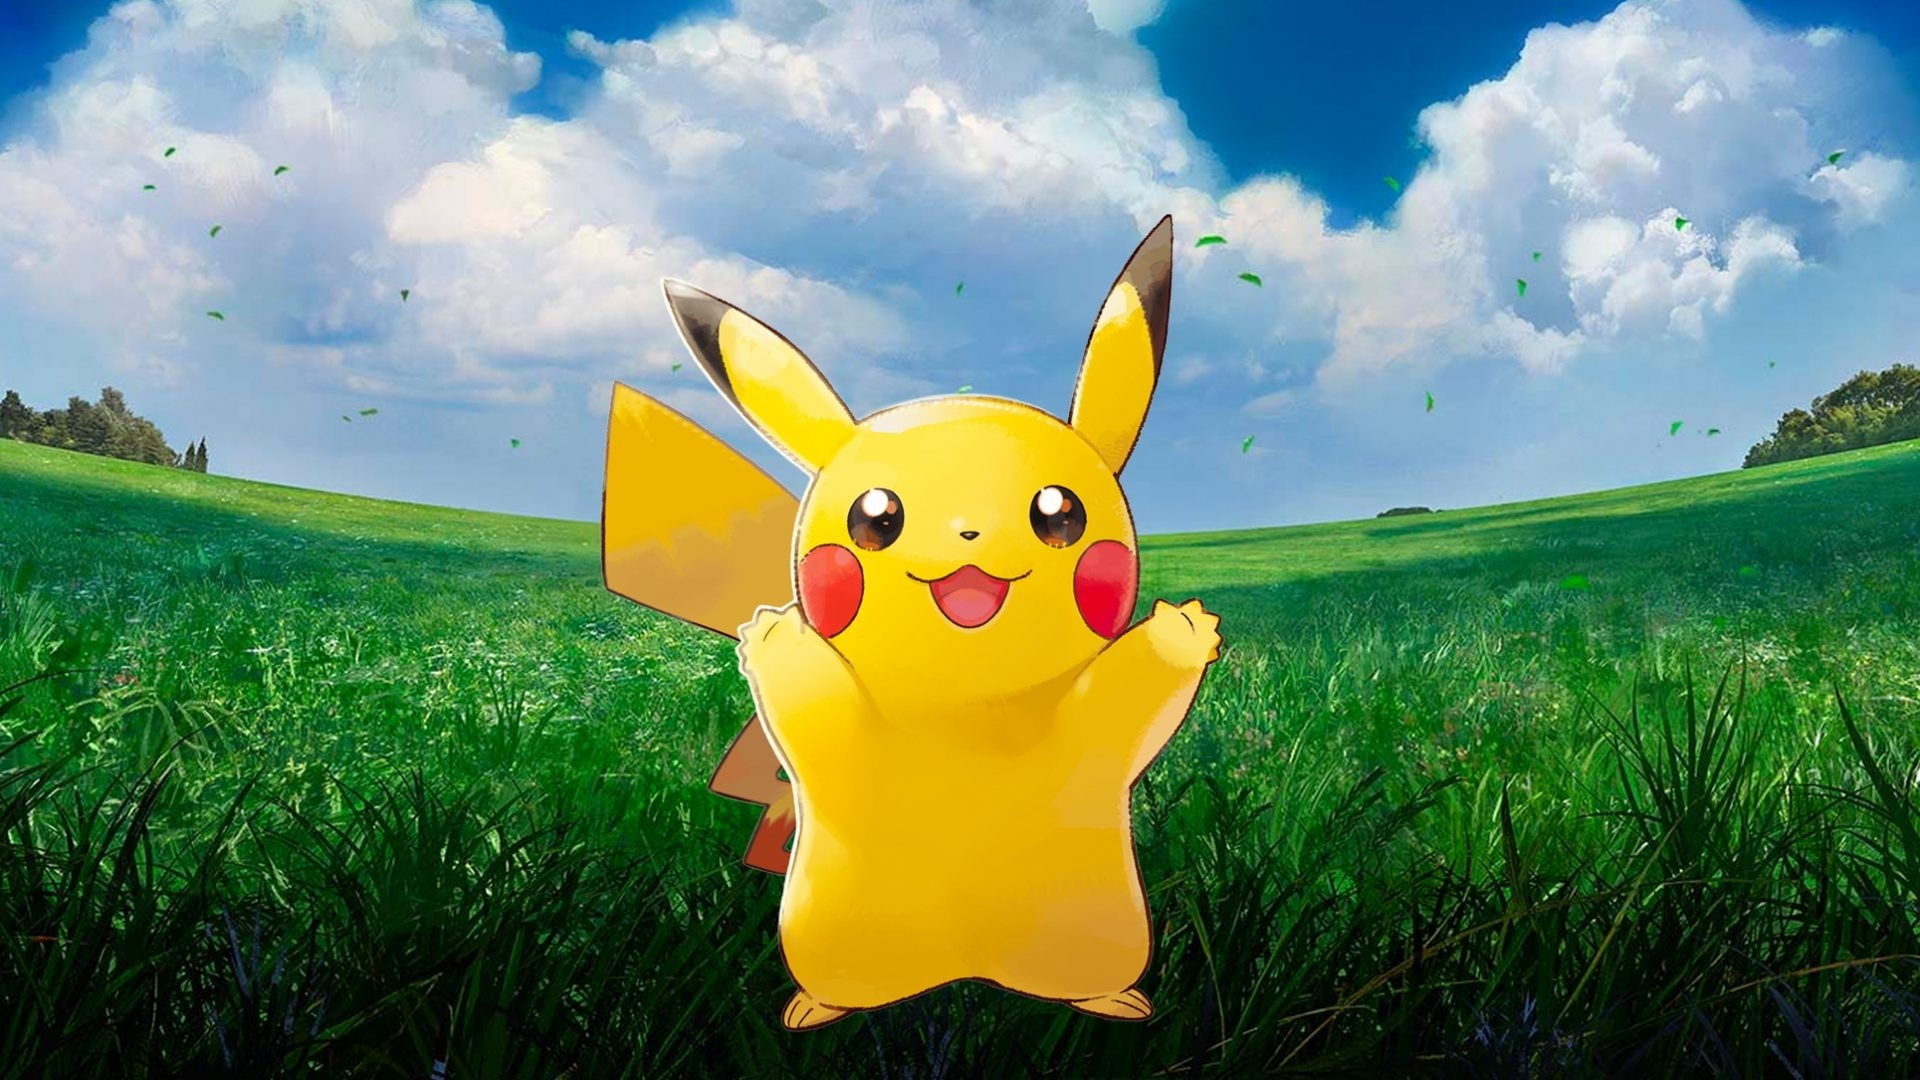 Pikachu best picture